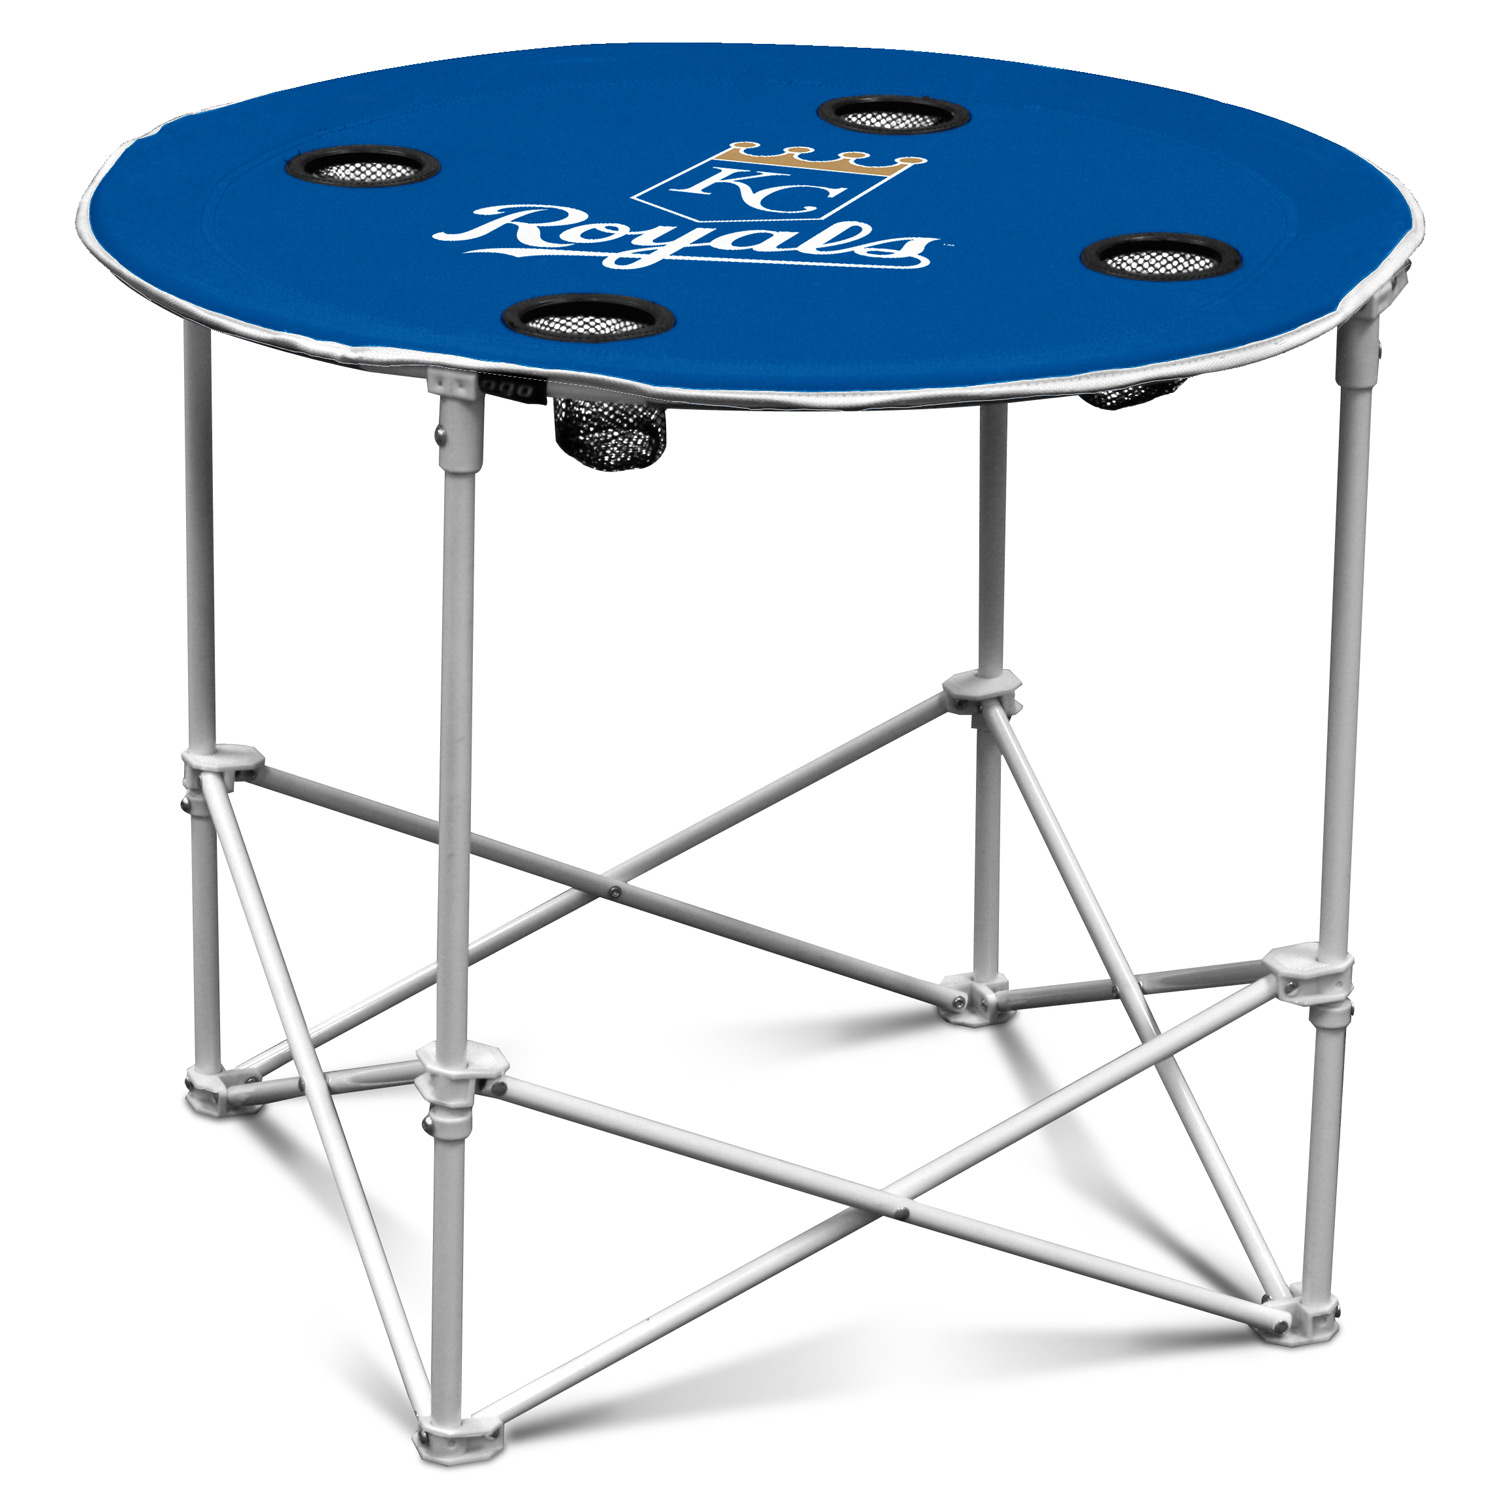 Kansas City Royals Round Tailgate Table